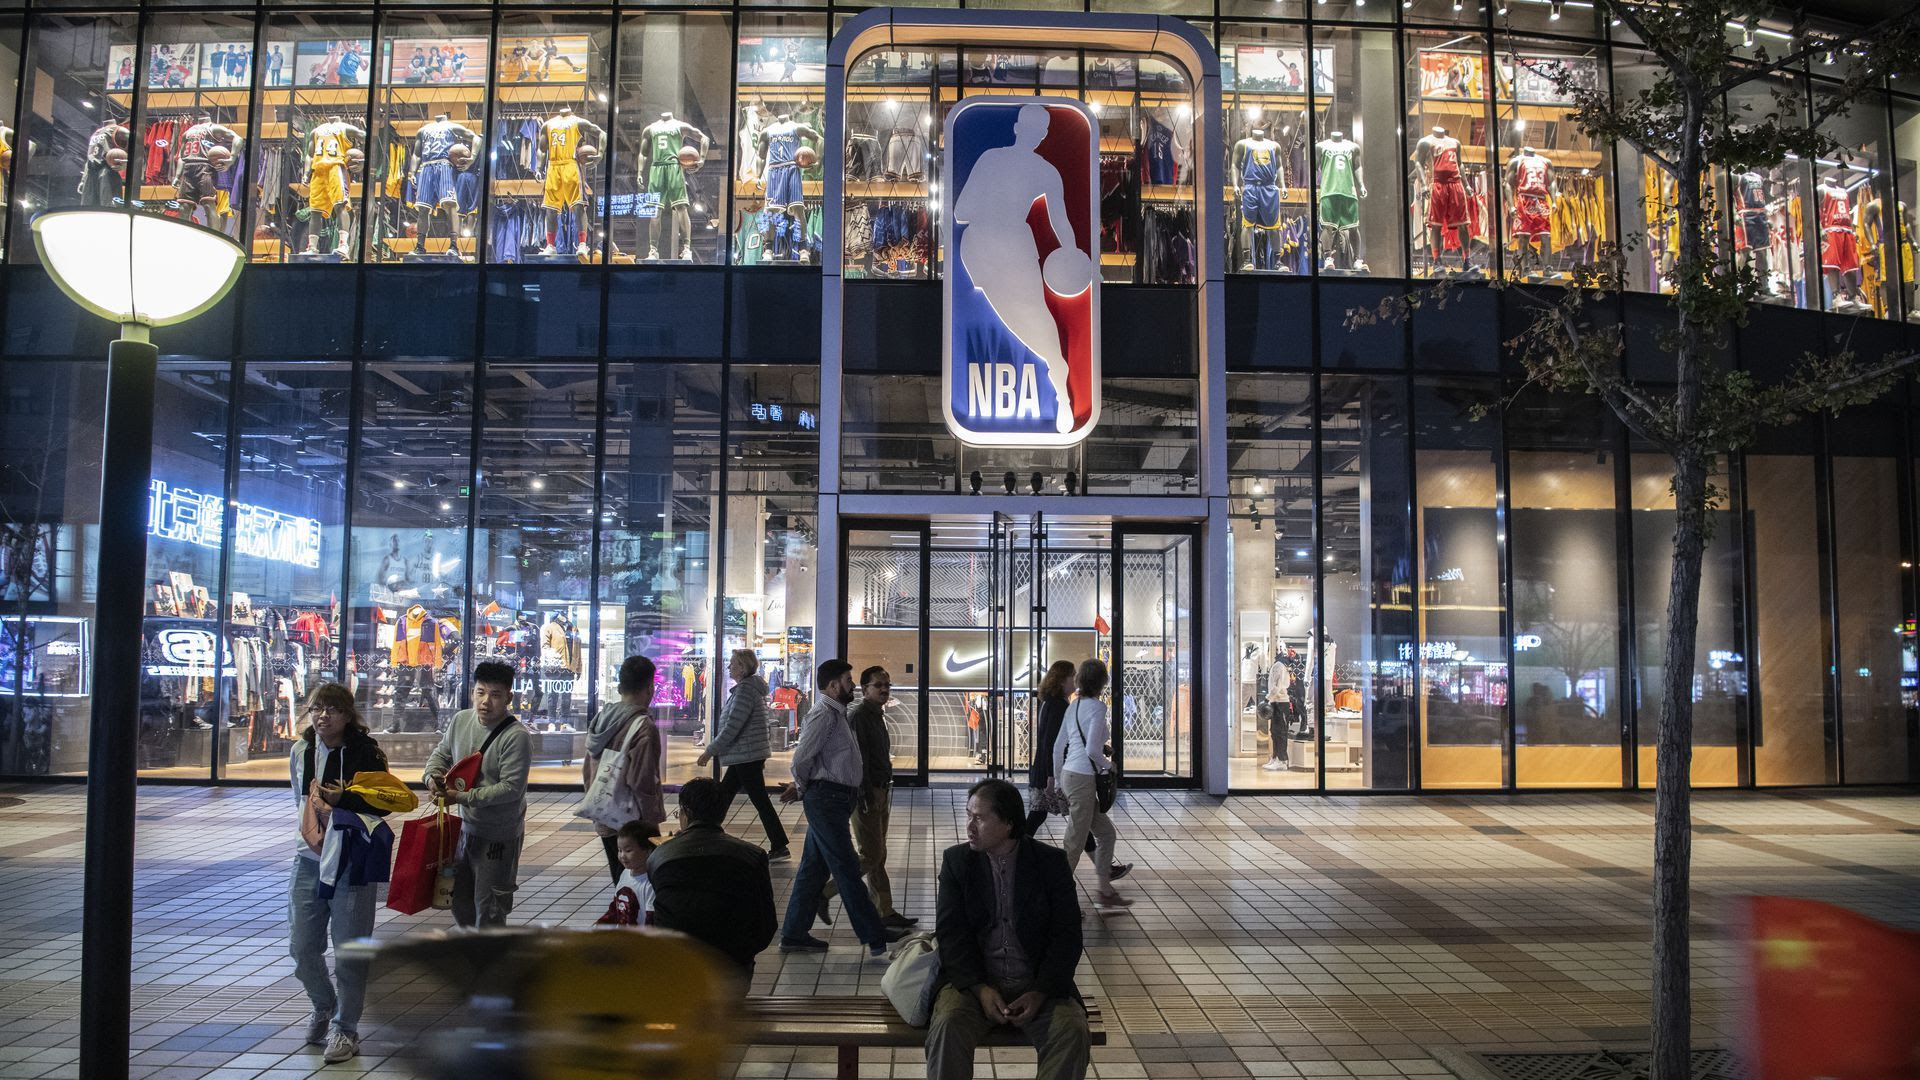 NBA store in China